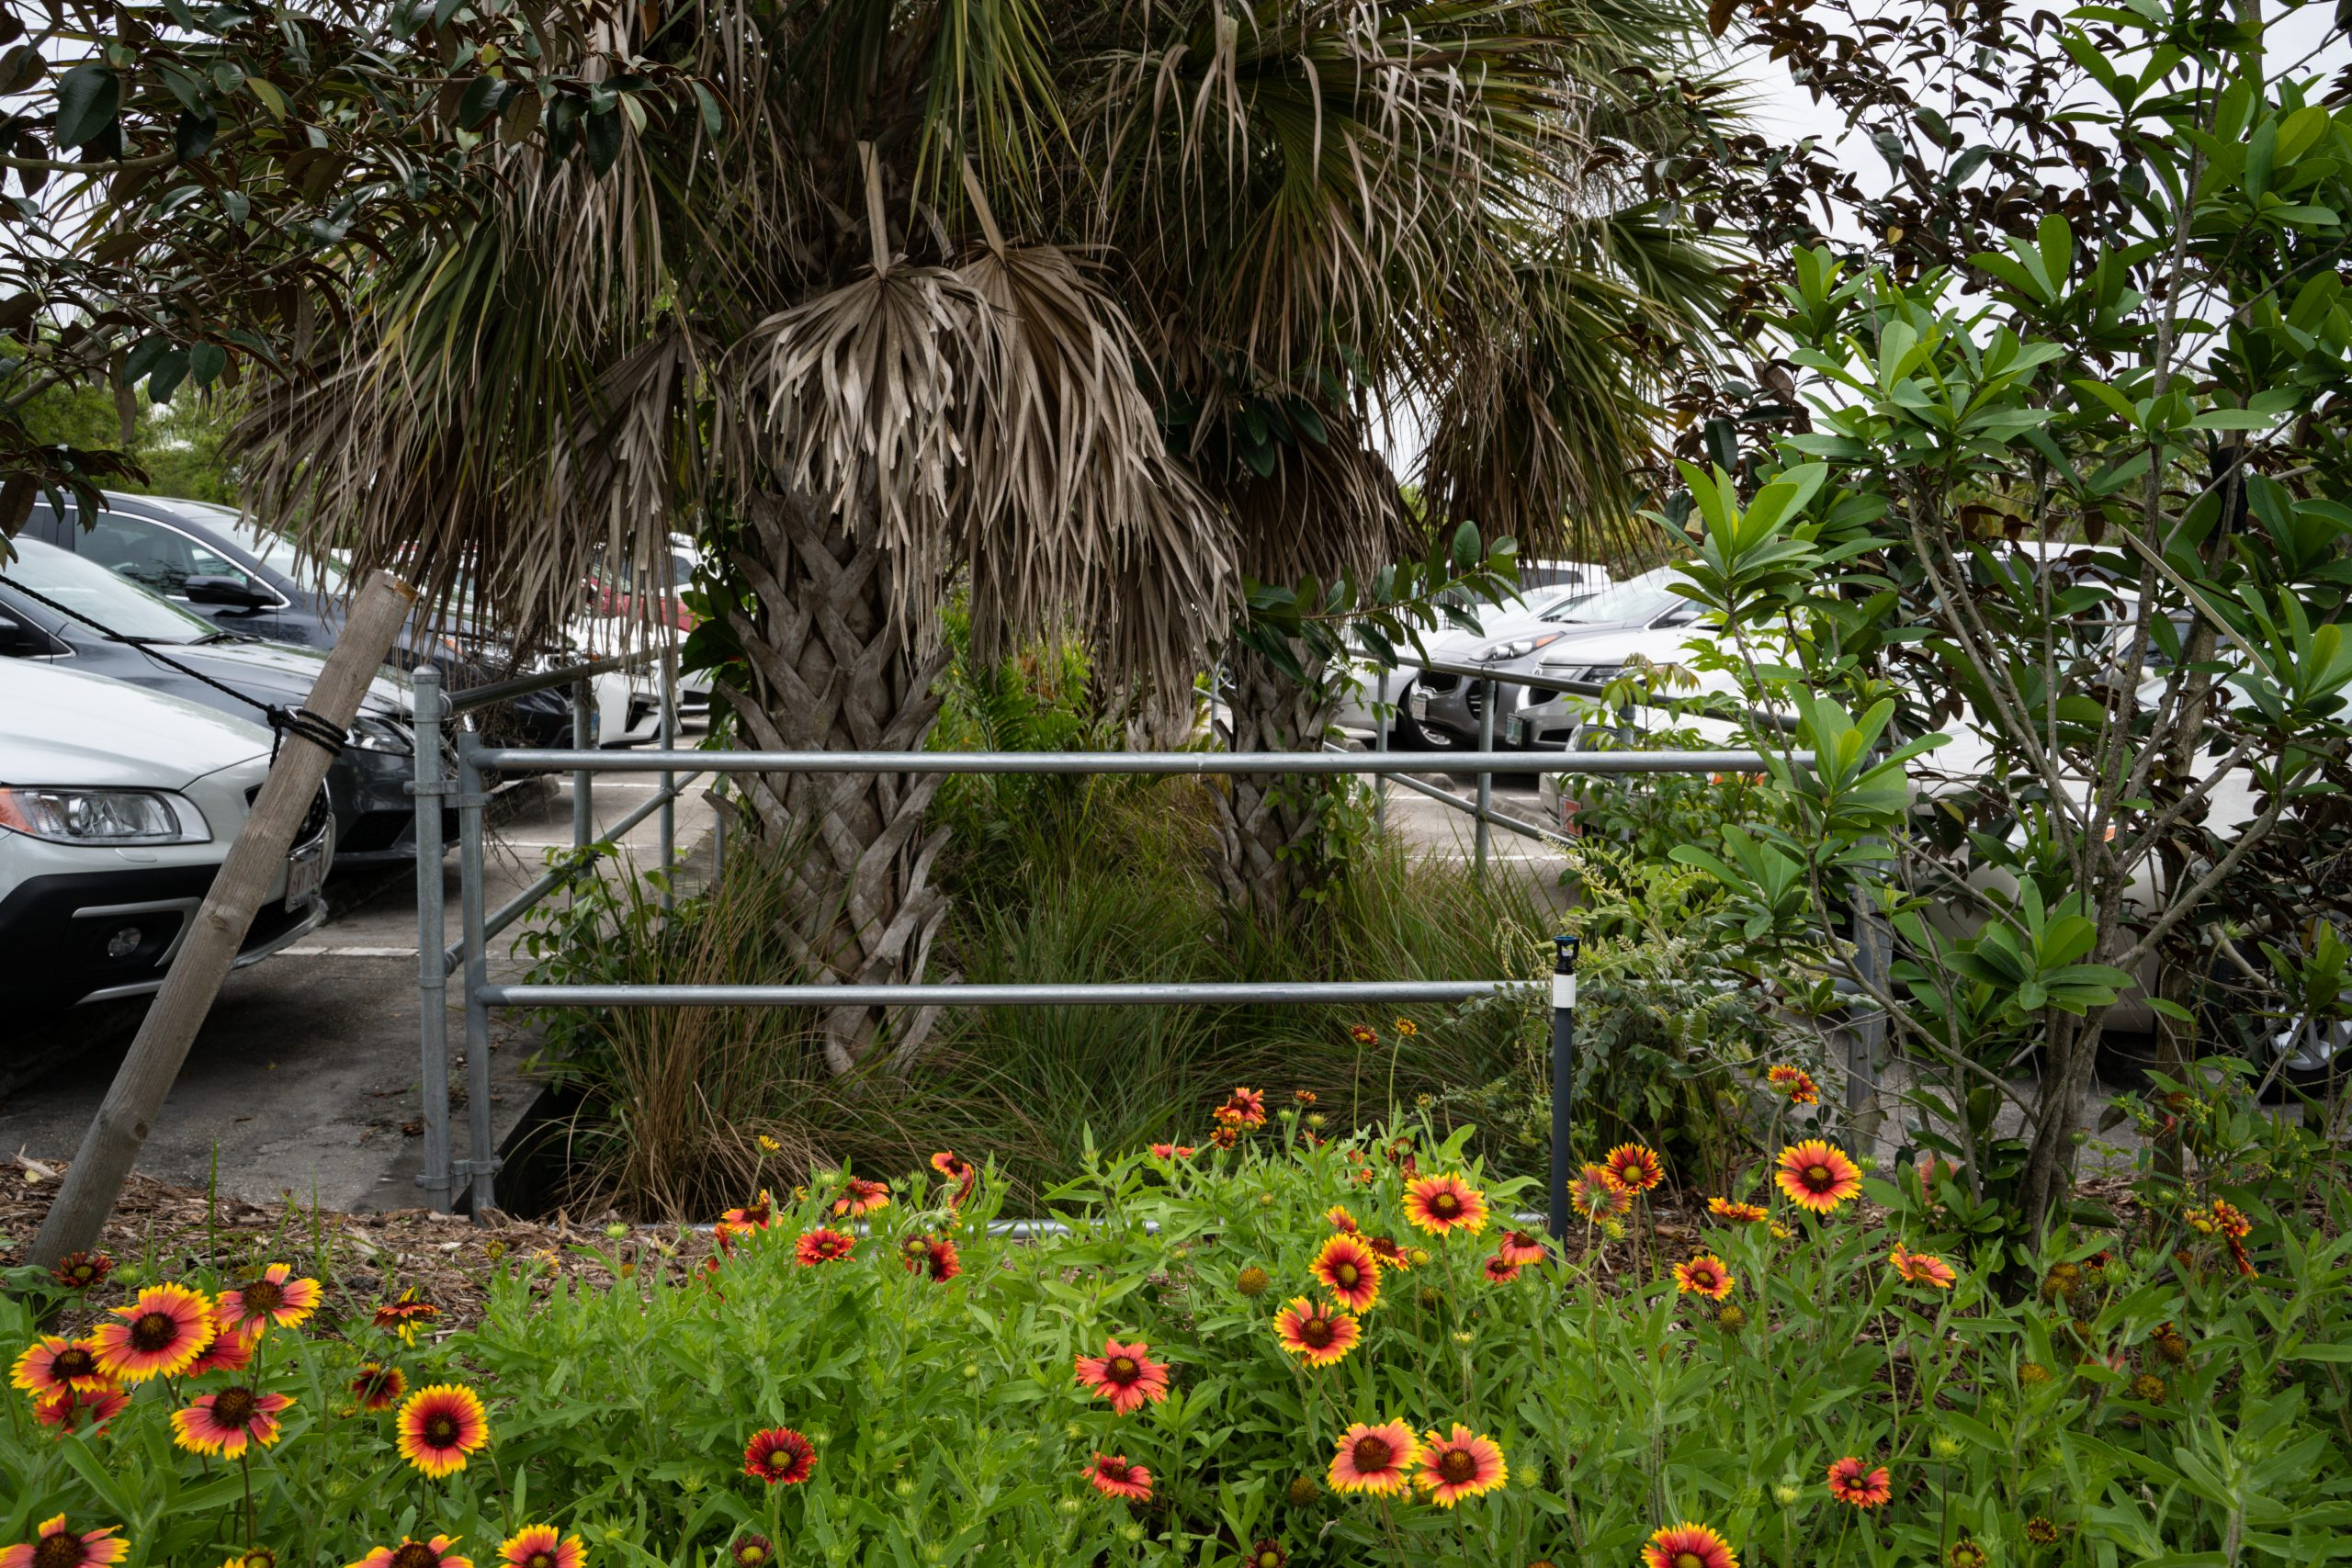 Image of swales that collect rainwater in Naples Botanical Garden's parking lot